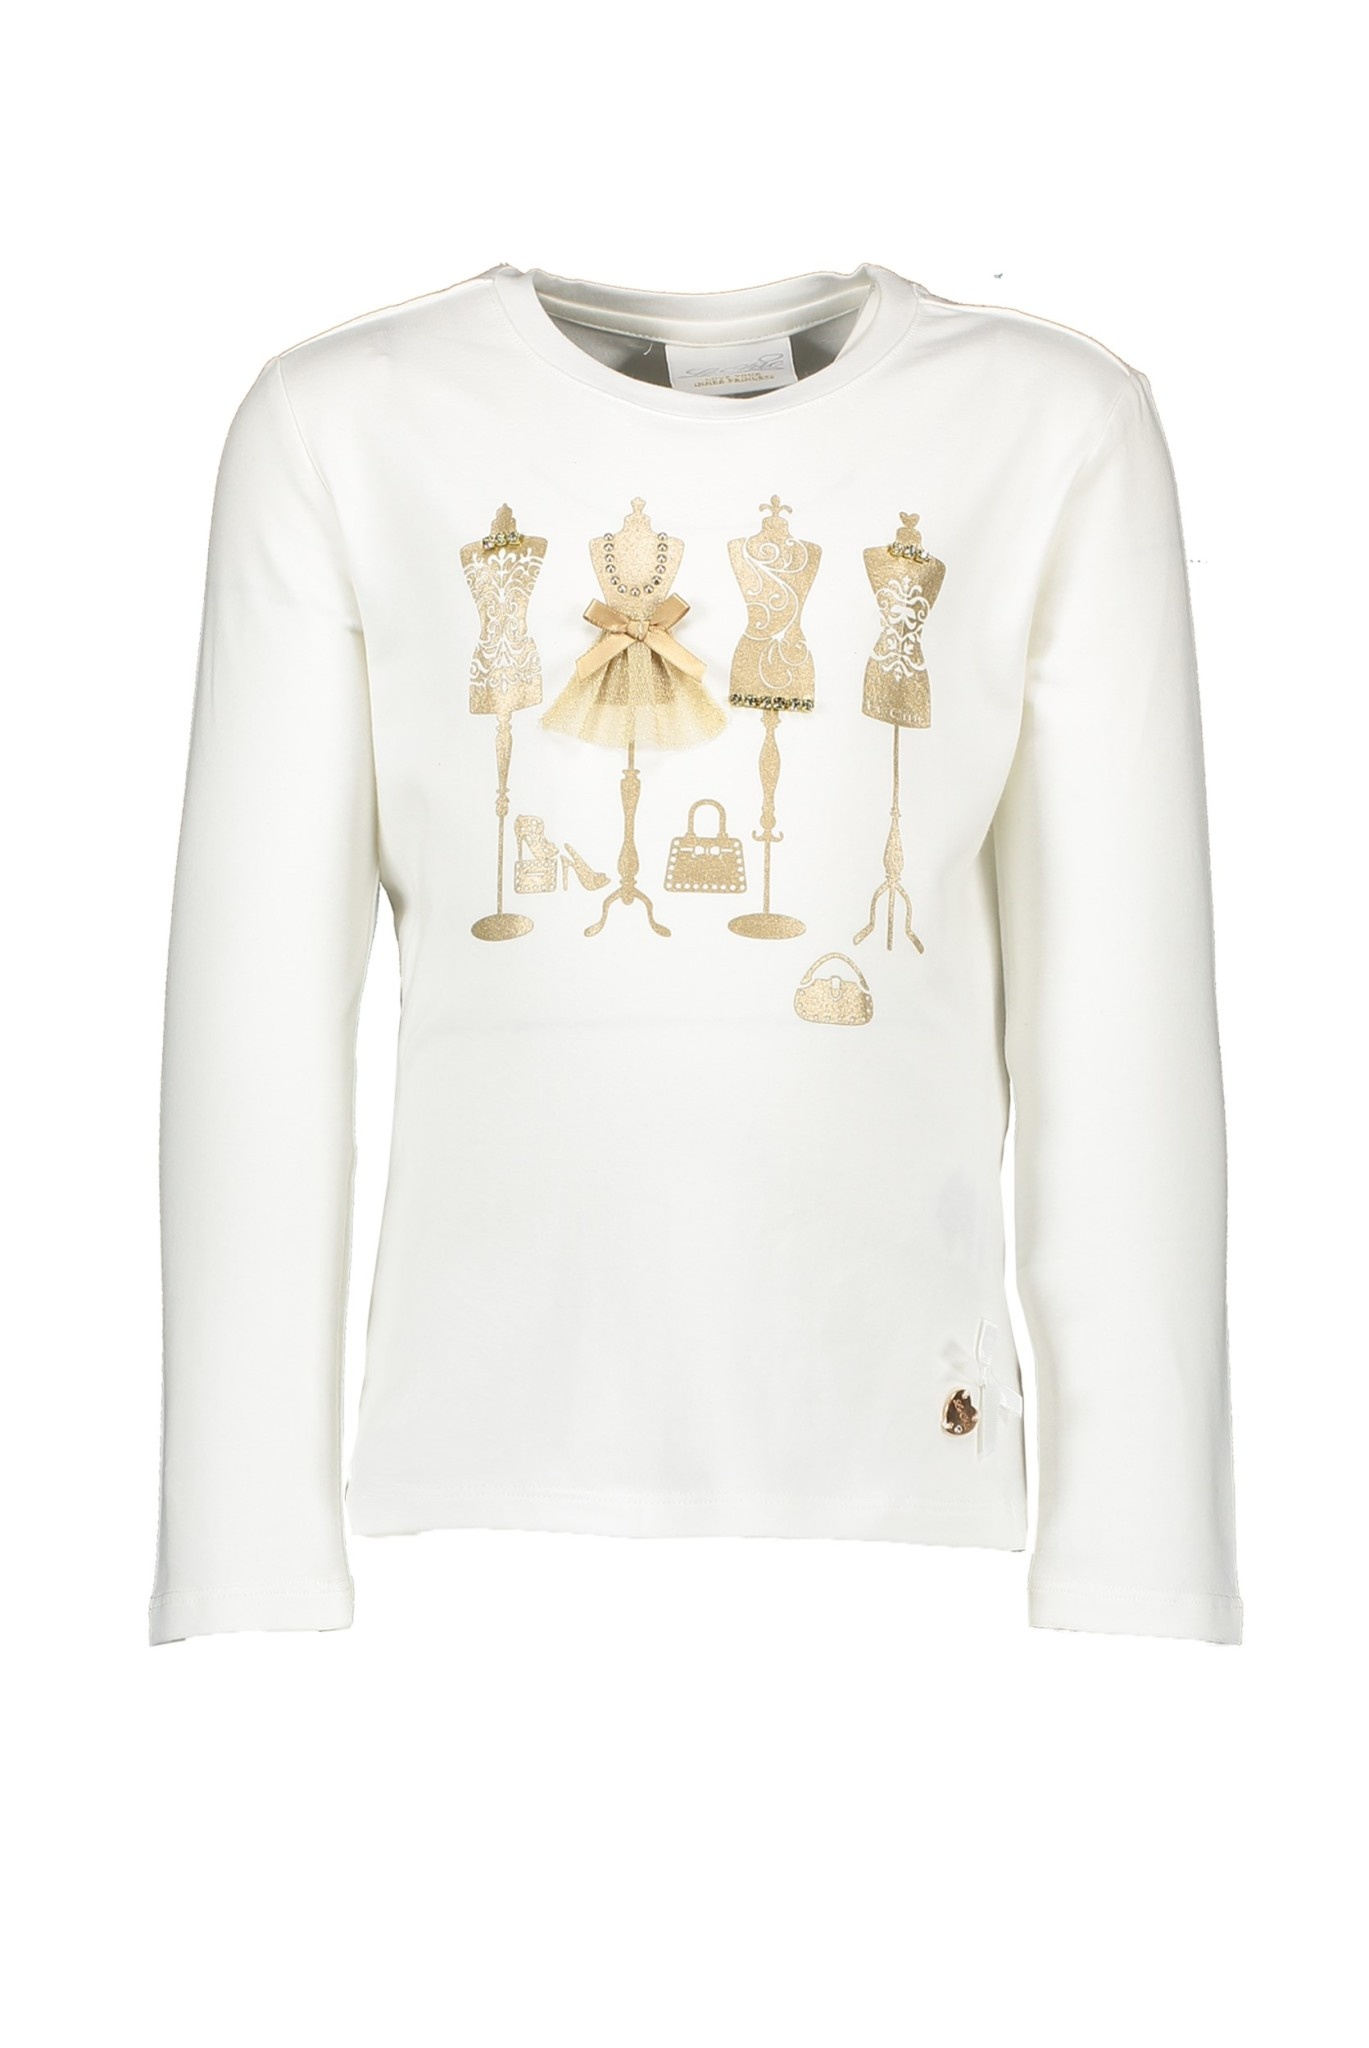 Lechic Le Chic Girls White Mannequin Top